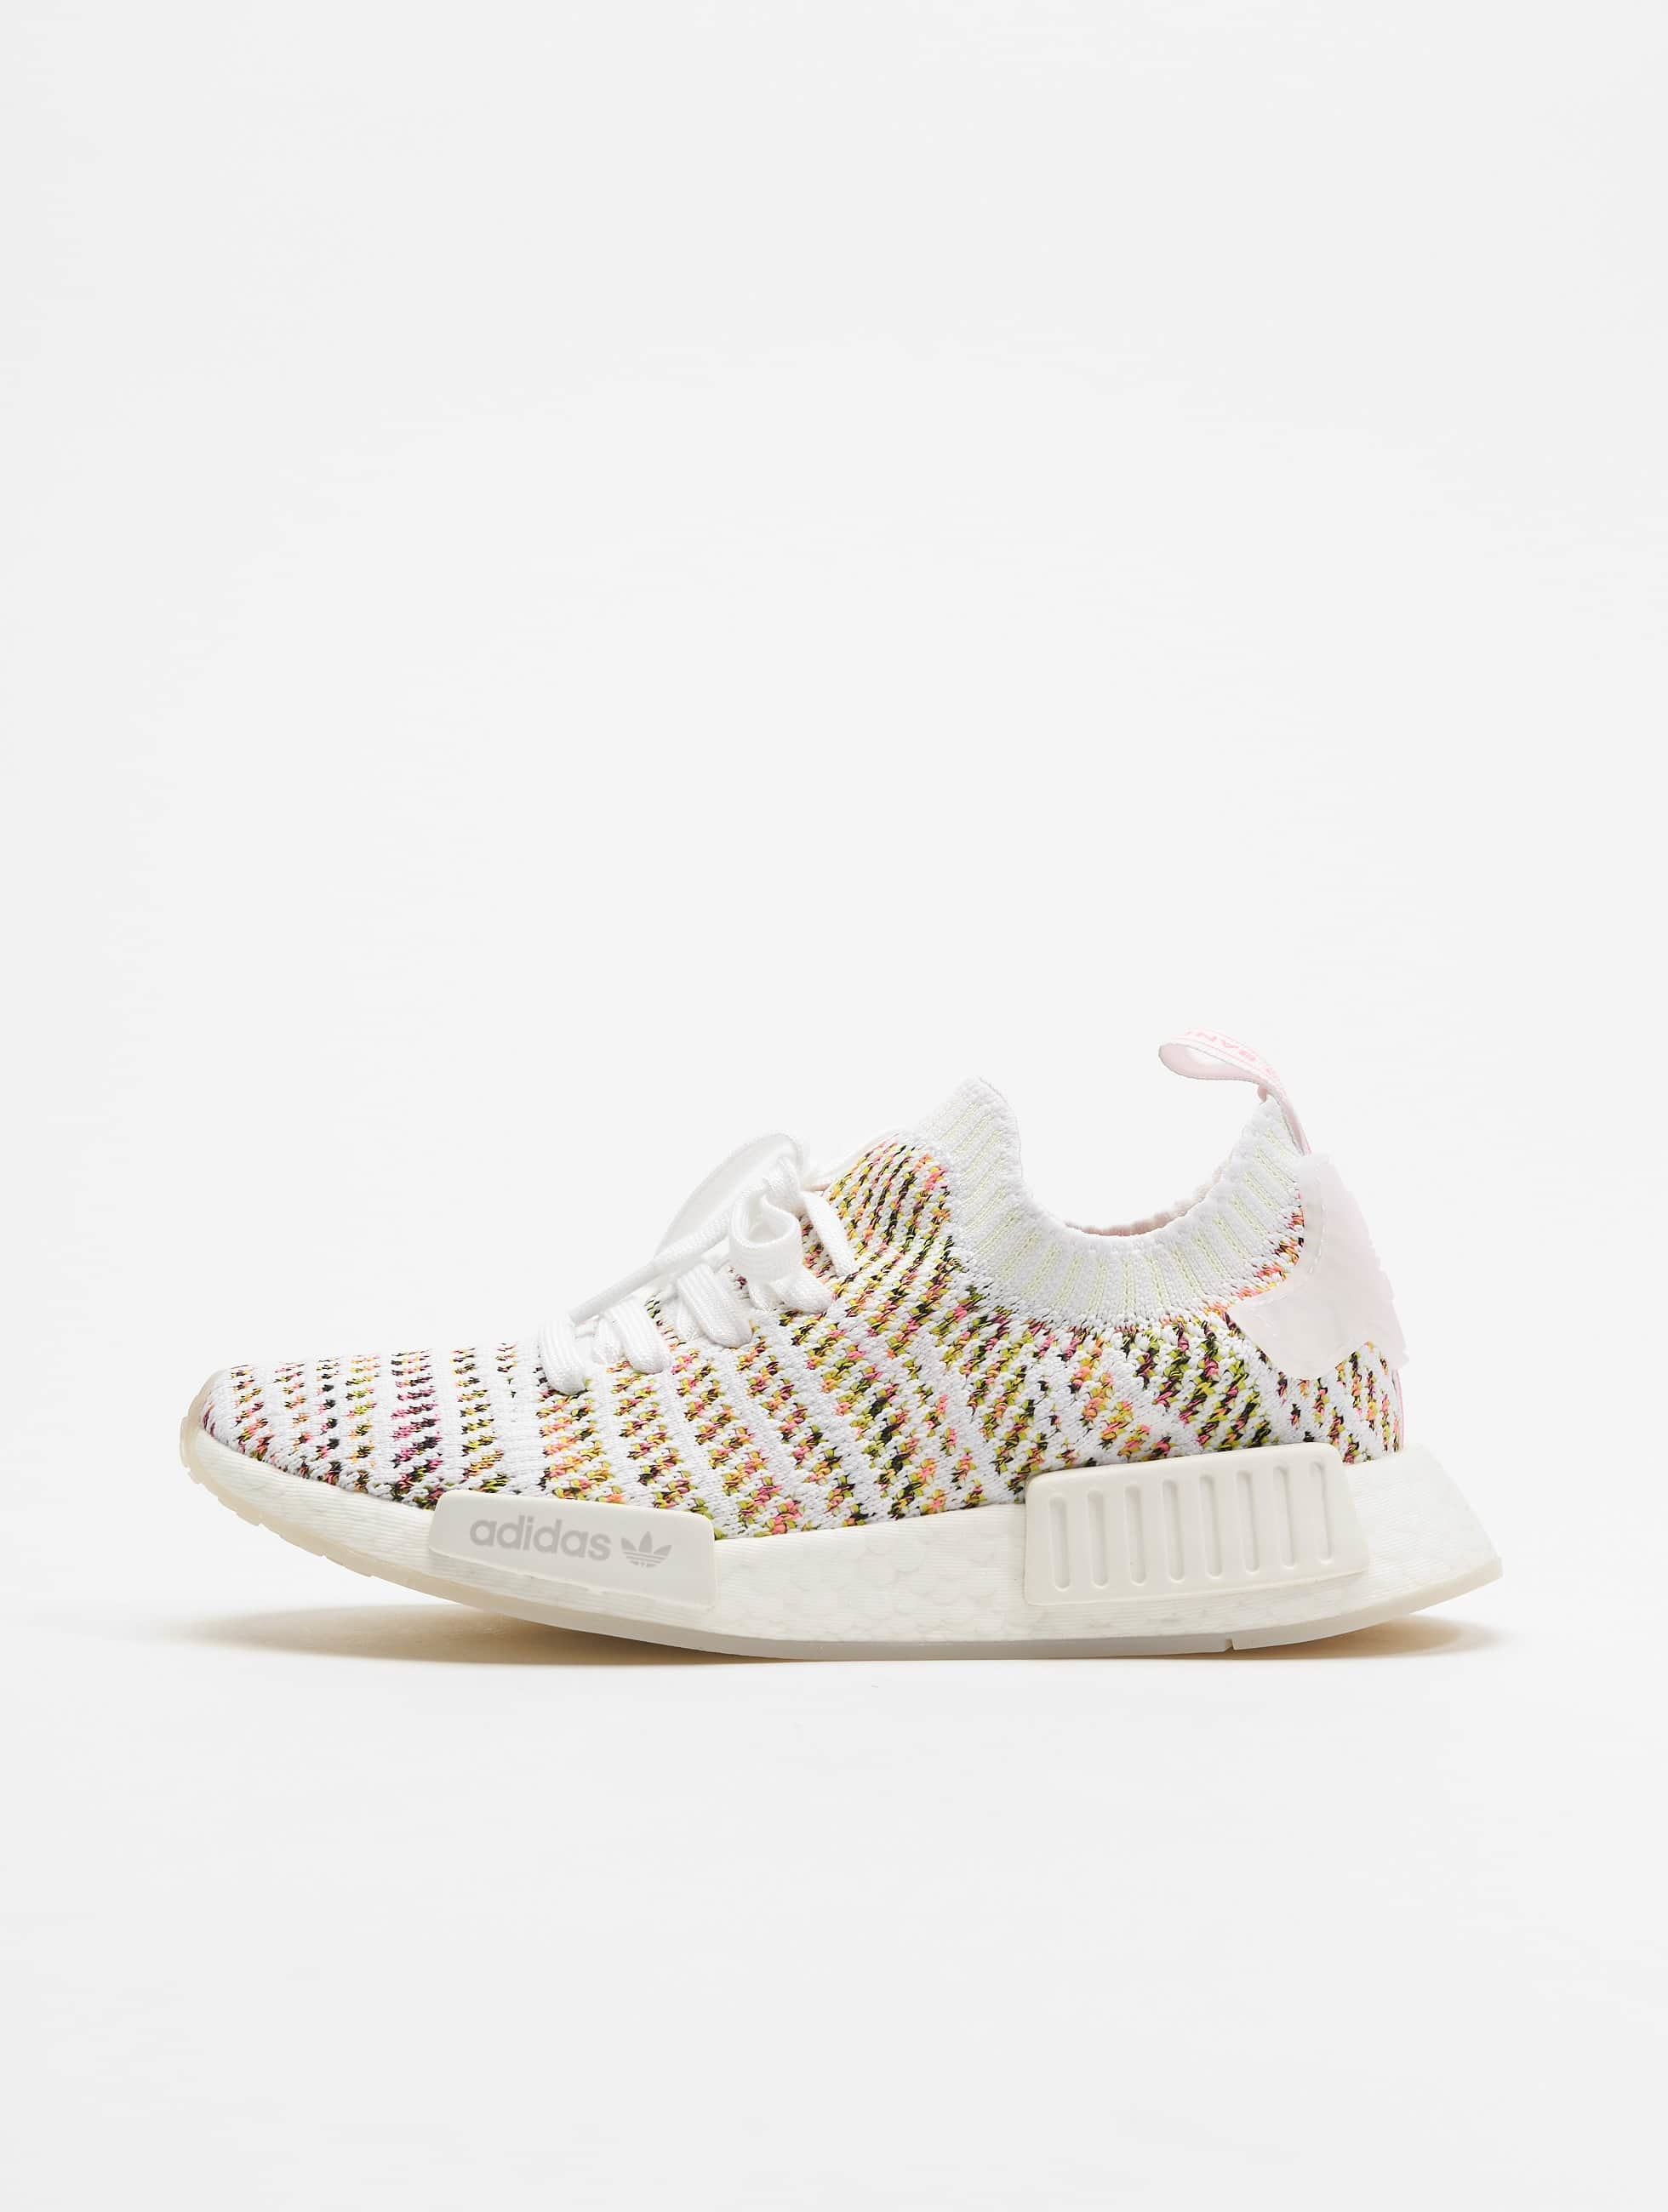 adidas originals I 5923 Sneakers Active PurpleFtwr WhiteGum3